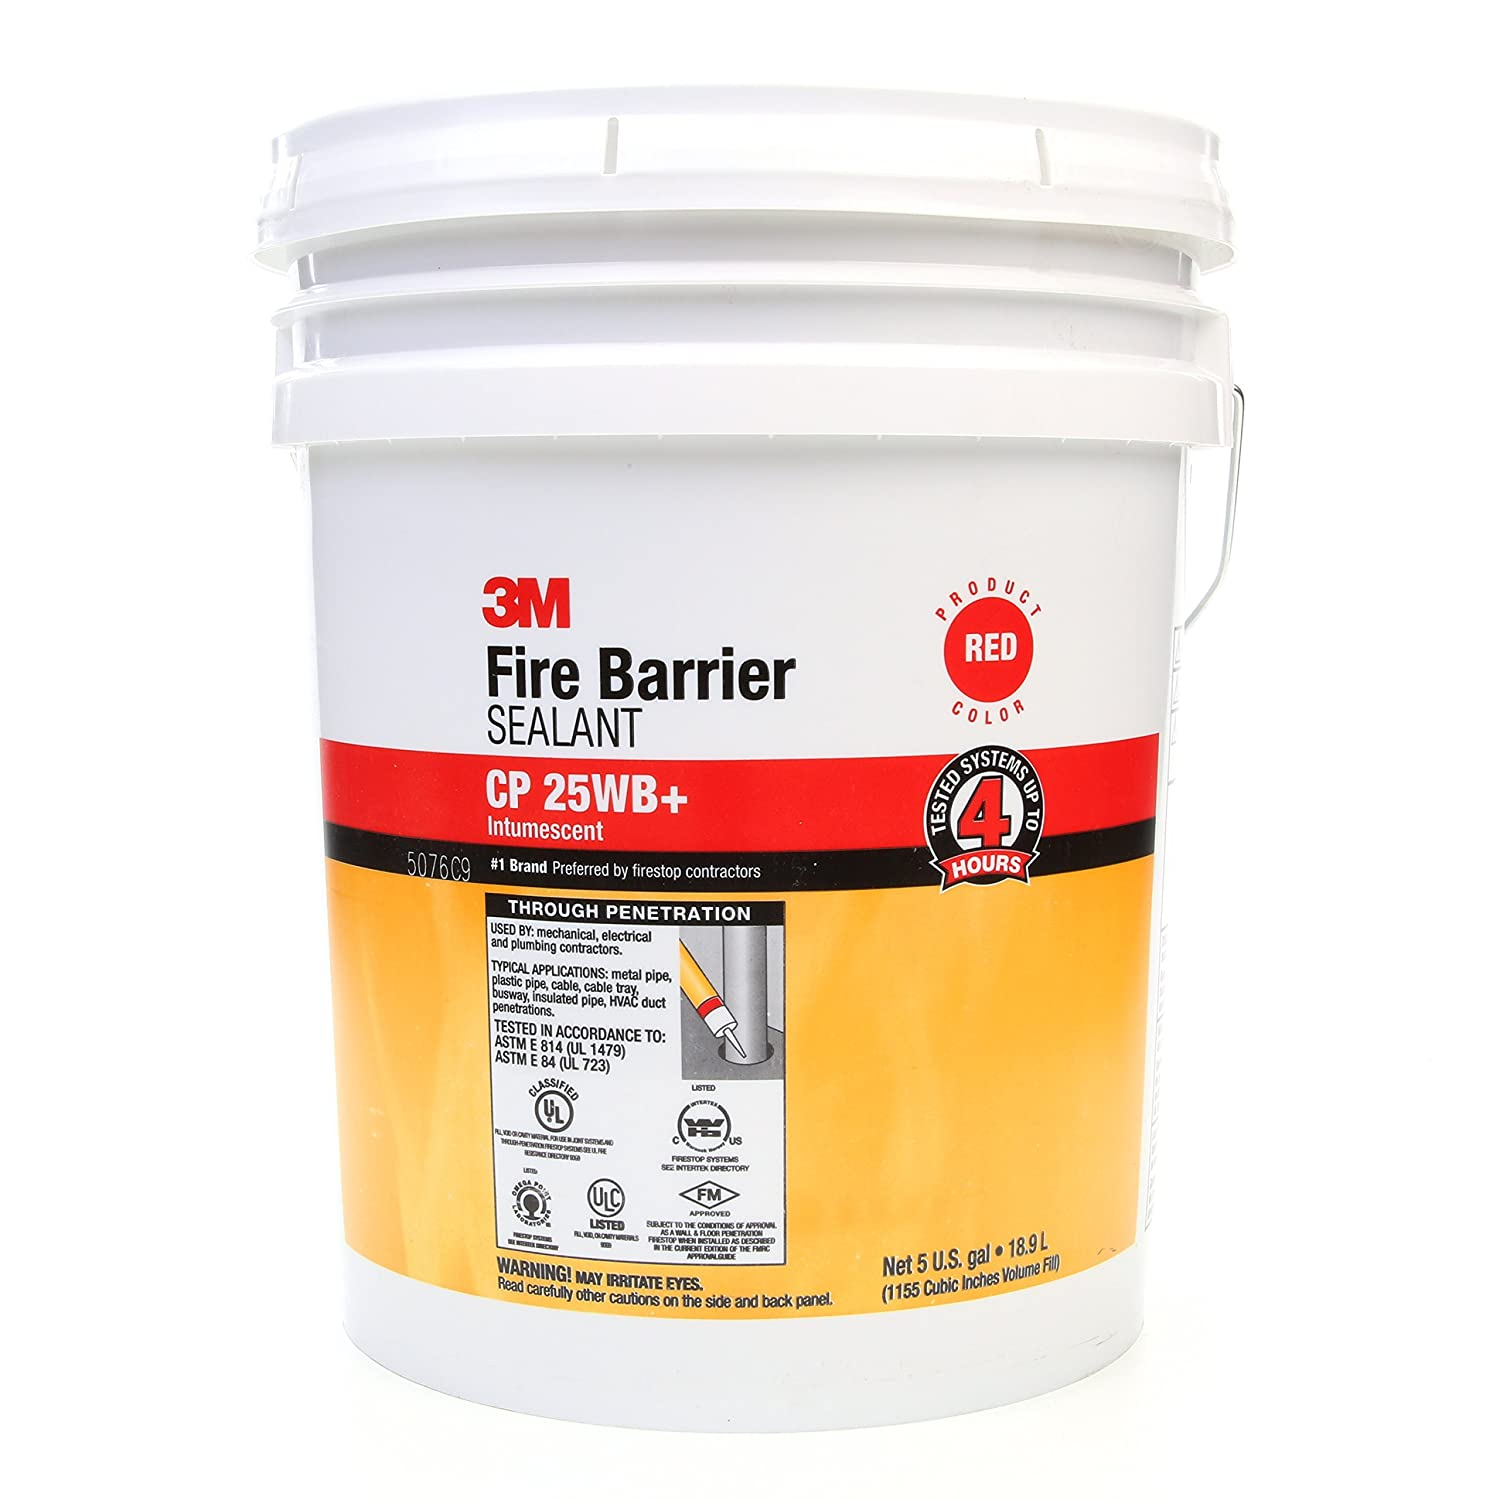 Image of Home Improvements 3M Fire Barrier Sealant CP 25WB+, Red, 5 Gallon Drum (Pail)